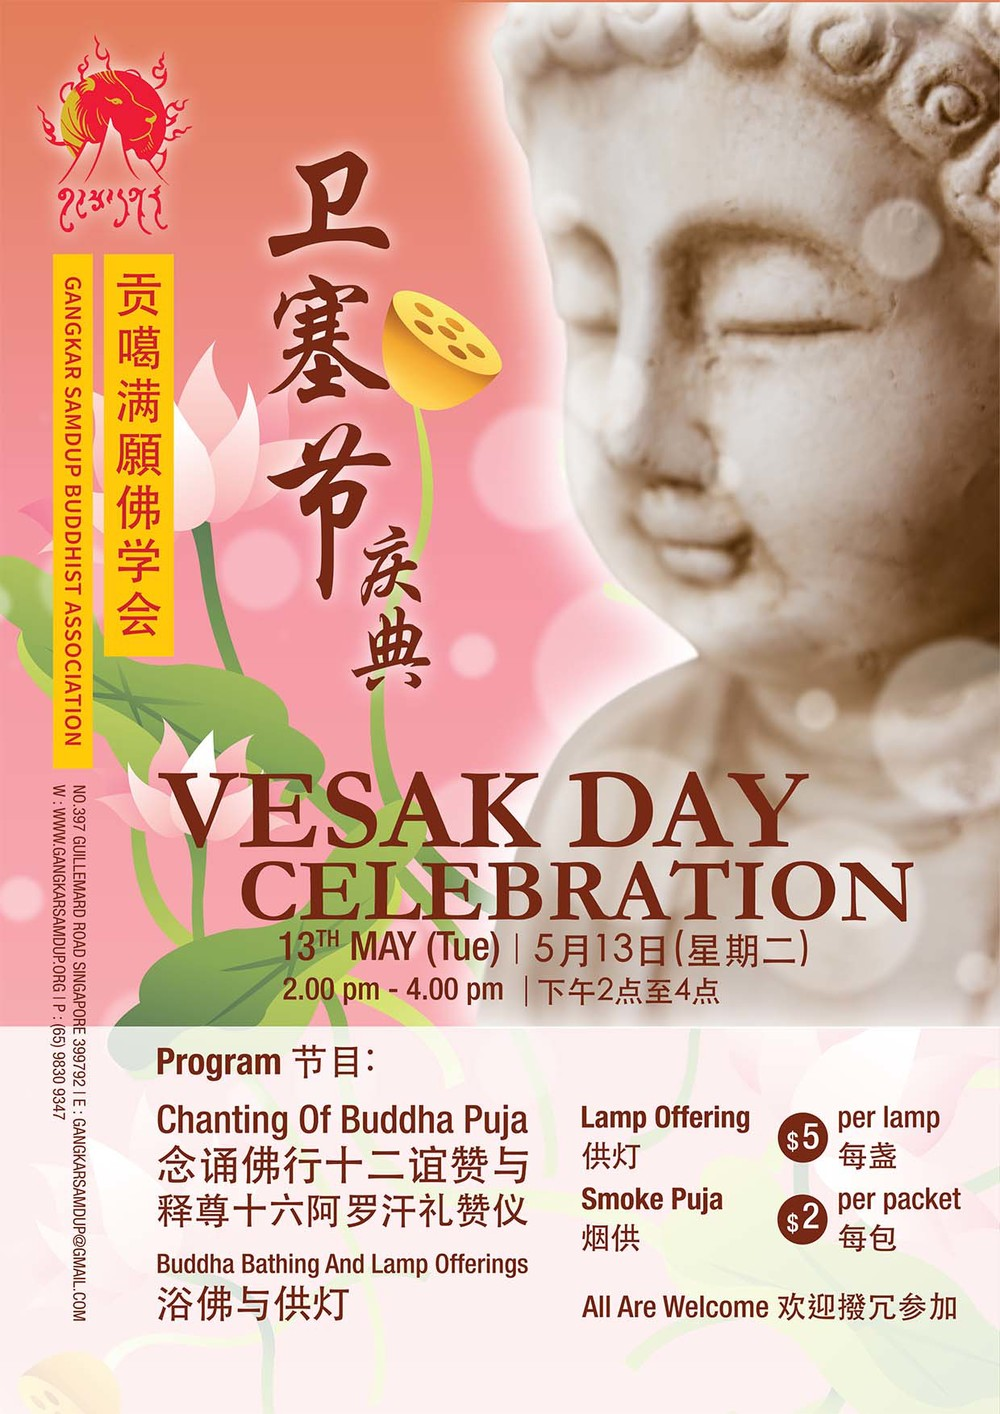 Vesak Day Celebration - Welcome all to join us.